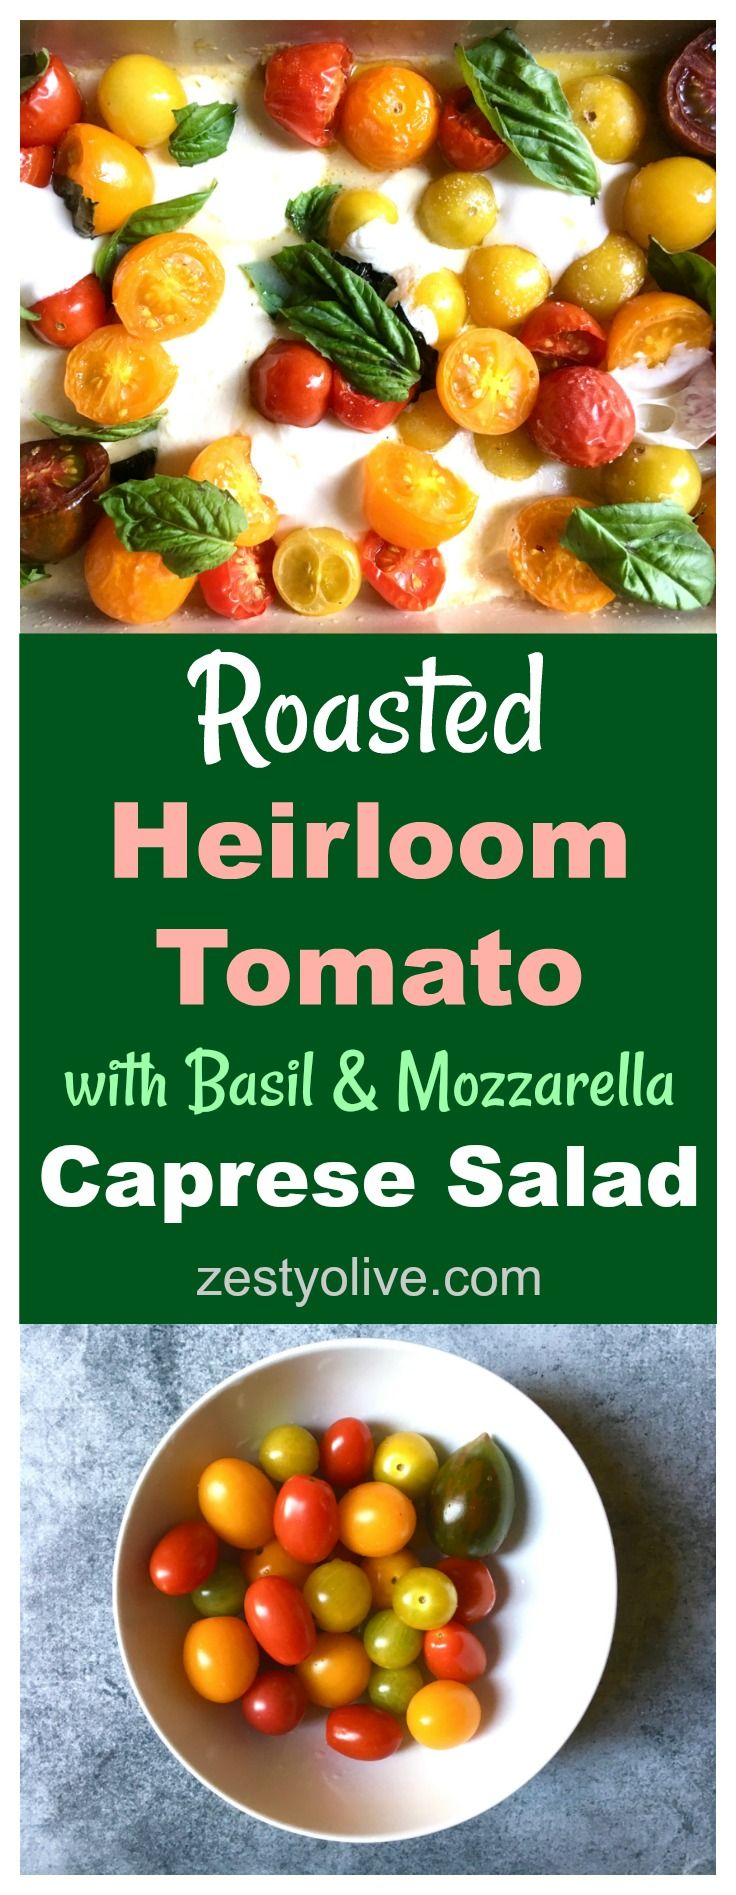 Roasted Heirloom Tomatoes with Basil & Mozzarella Caprese Salad - easy, delicious salad ready in less than 20 minutes.